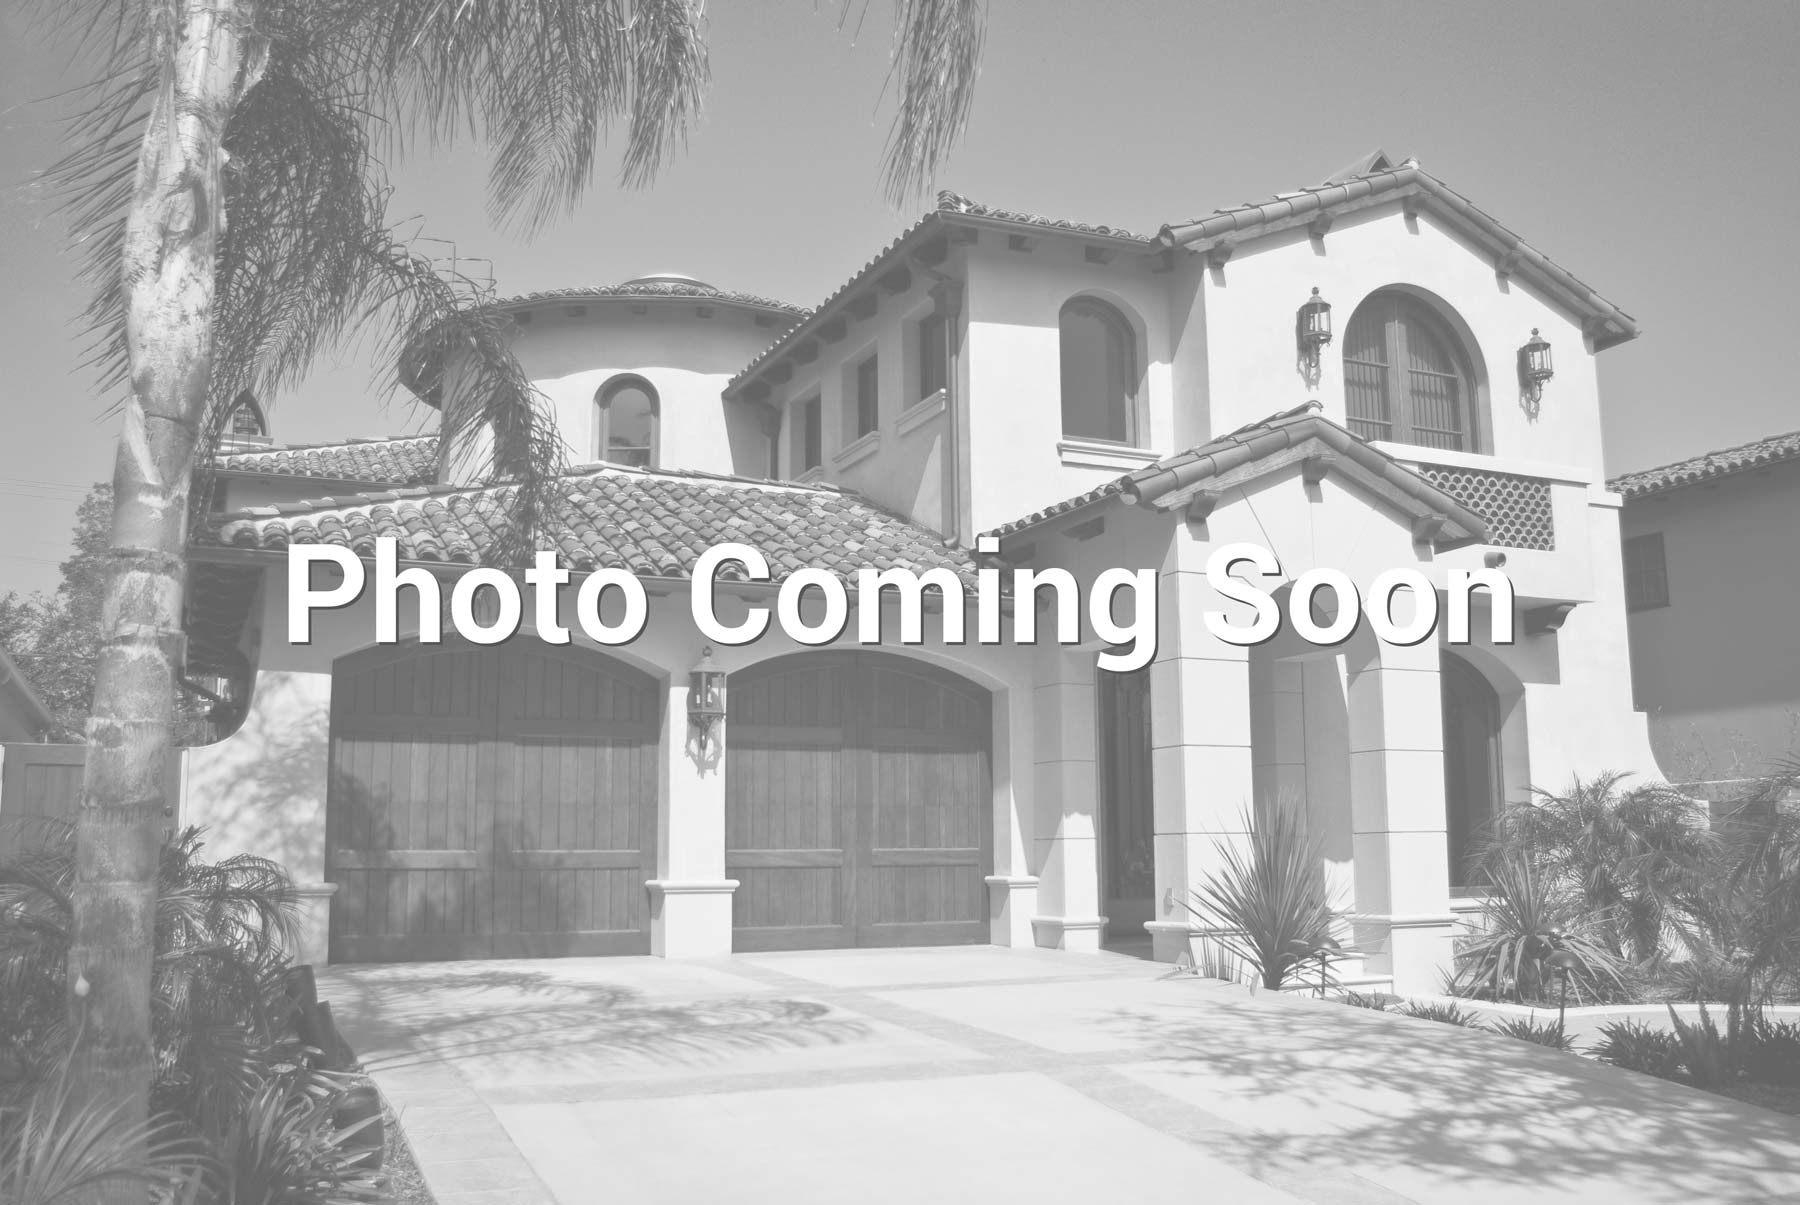 $50,000 - 3Br/2Ba -  for Sale in Rialto